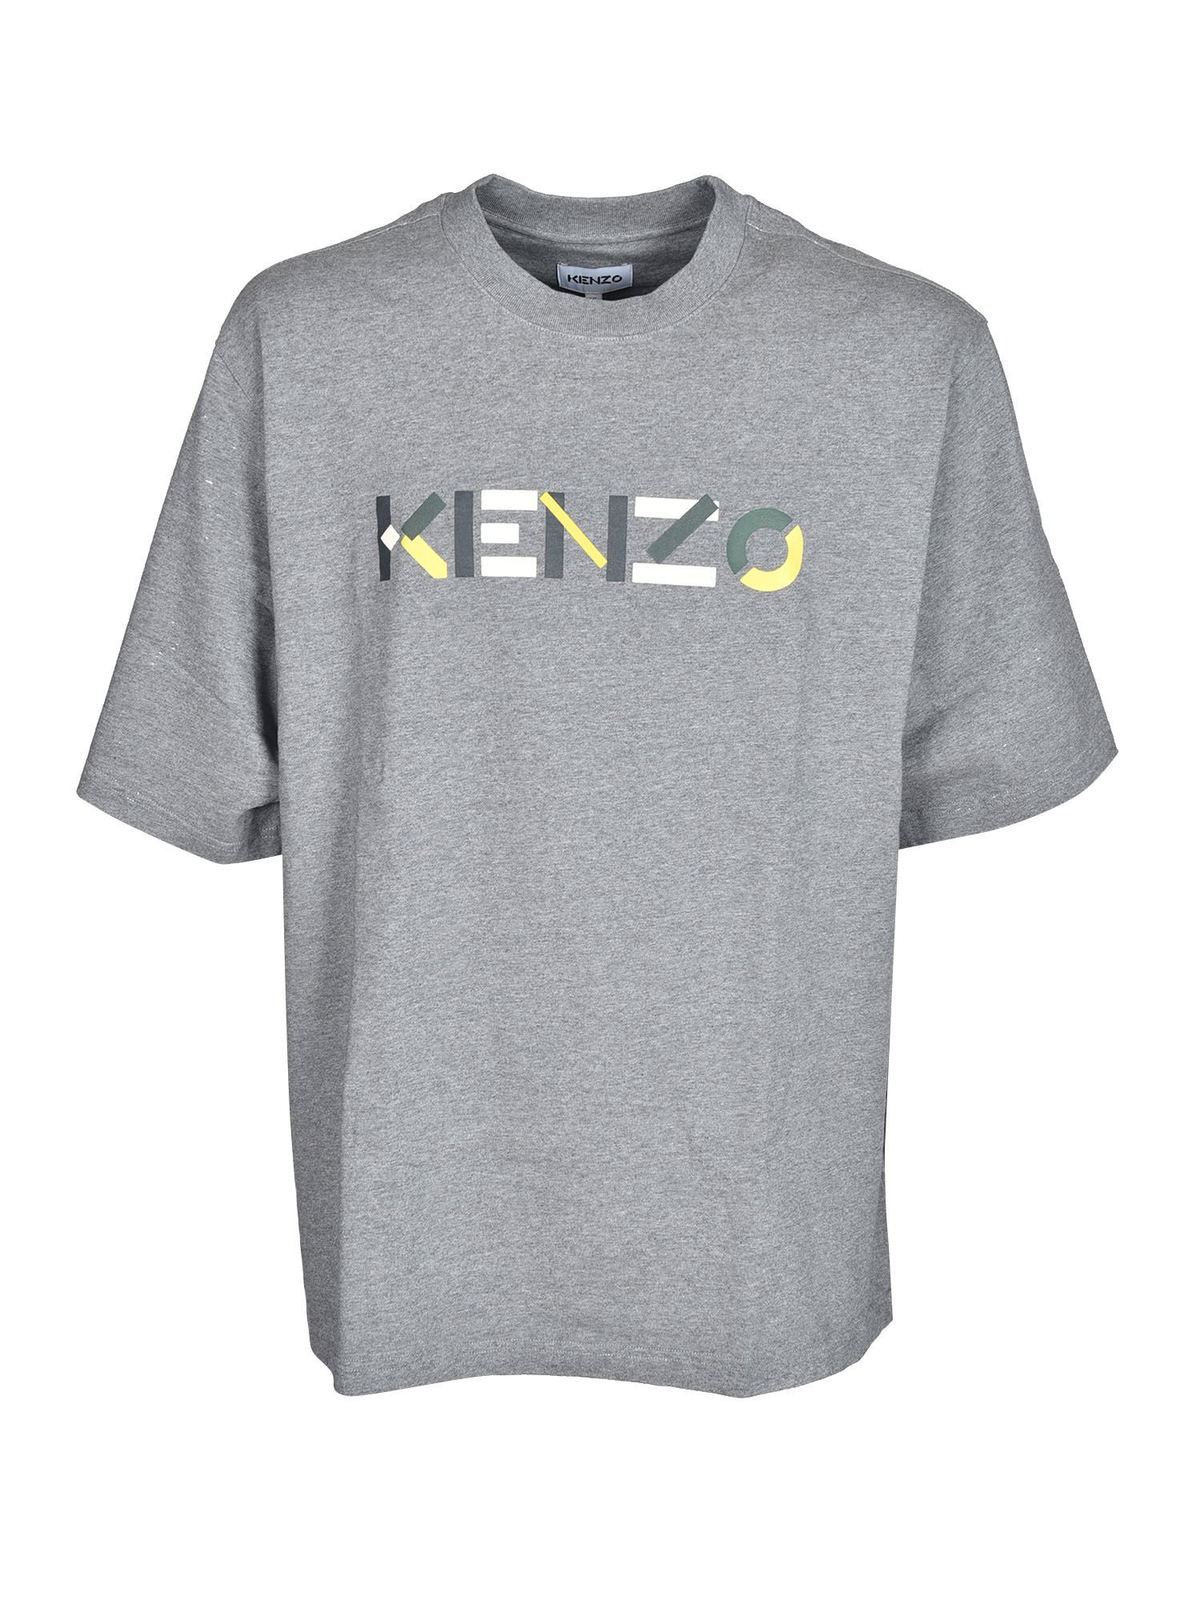 Kenzo MULTICOLOR LOGO SKATE T-SHIRT IN GREY